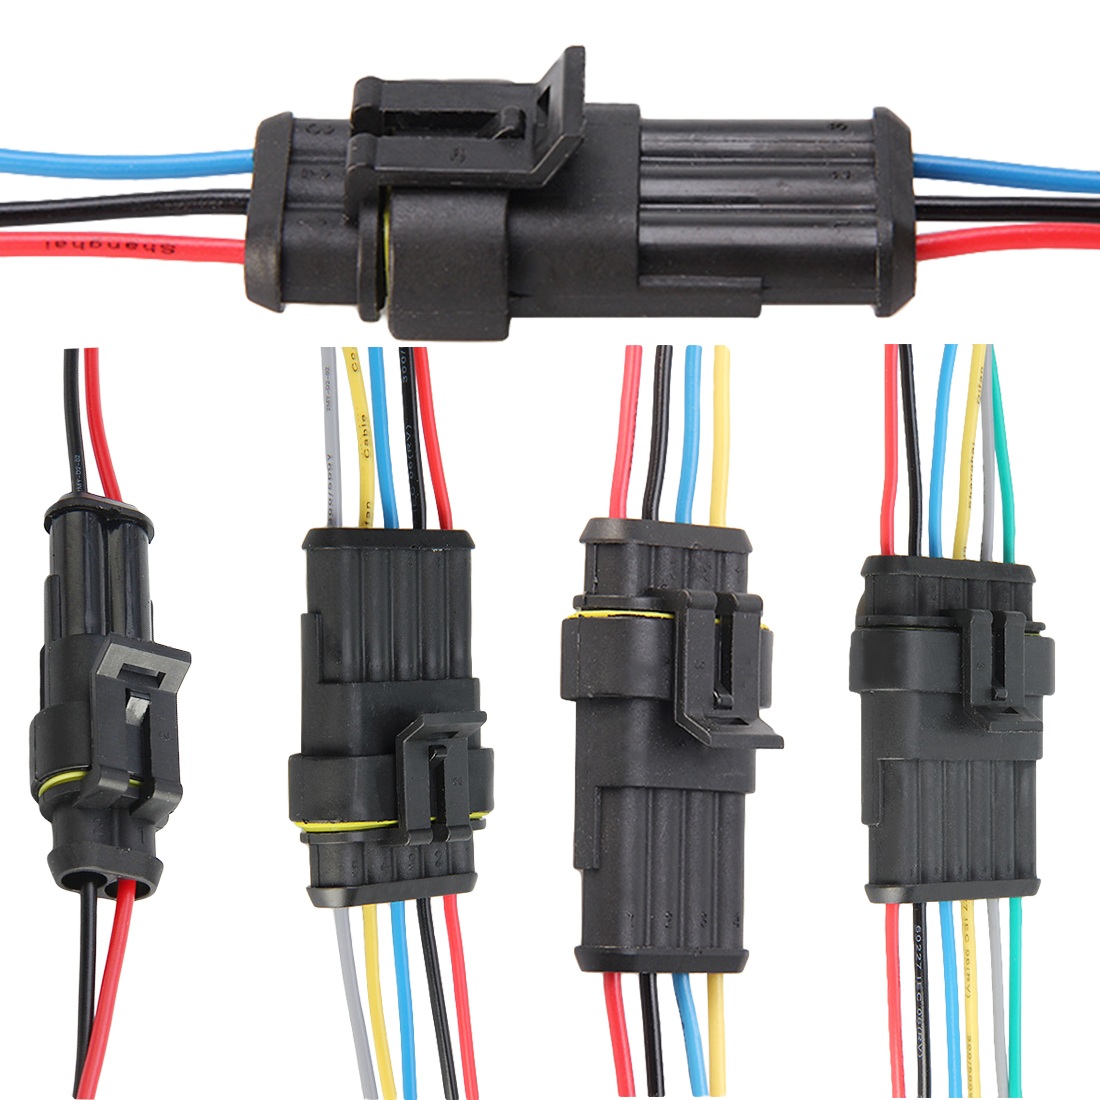 small resolution of 1 sets lots 2 3 4 5 6 pin car waterproof electrical connector plug with electrical wire cable car auto truck wire harness aliexpress com imall com